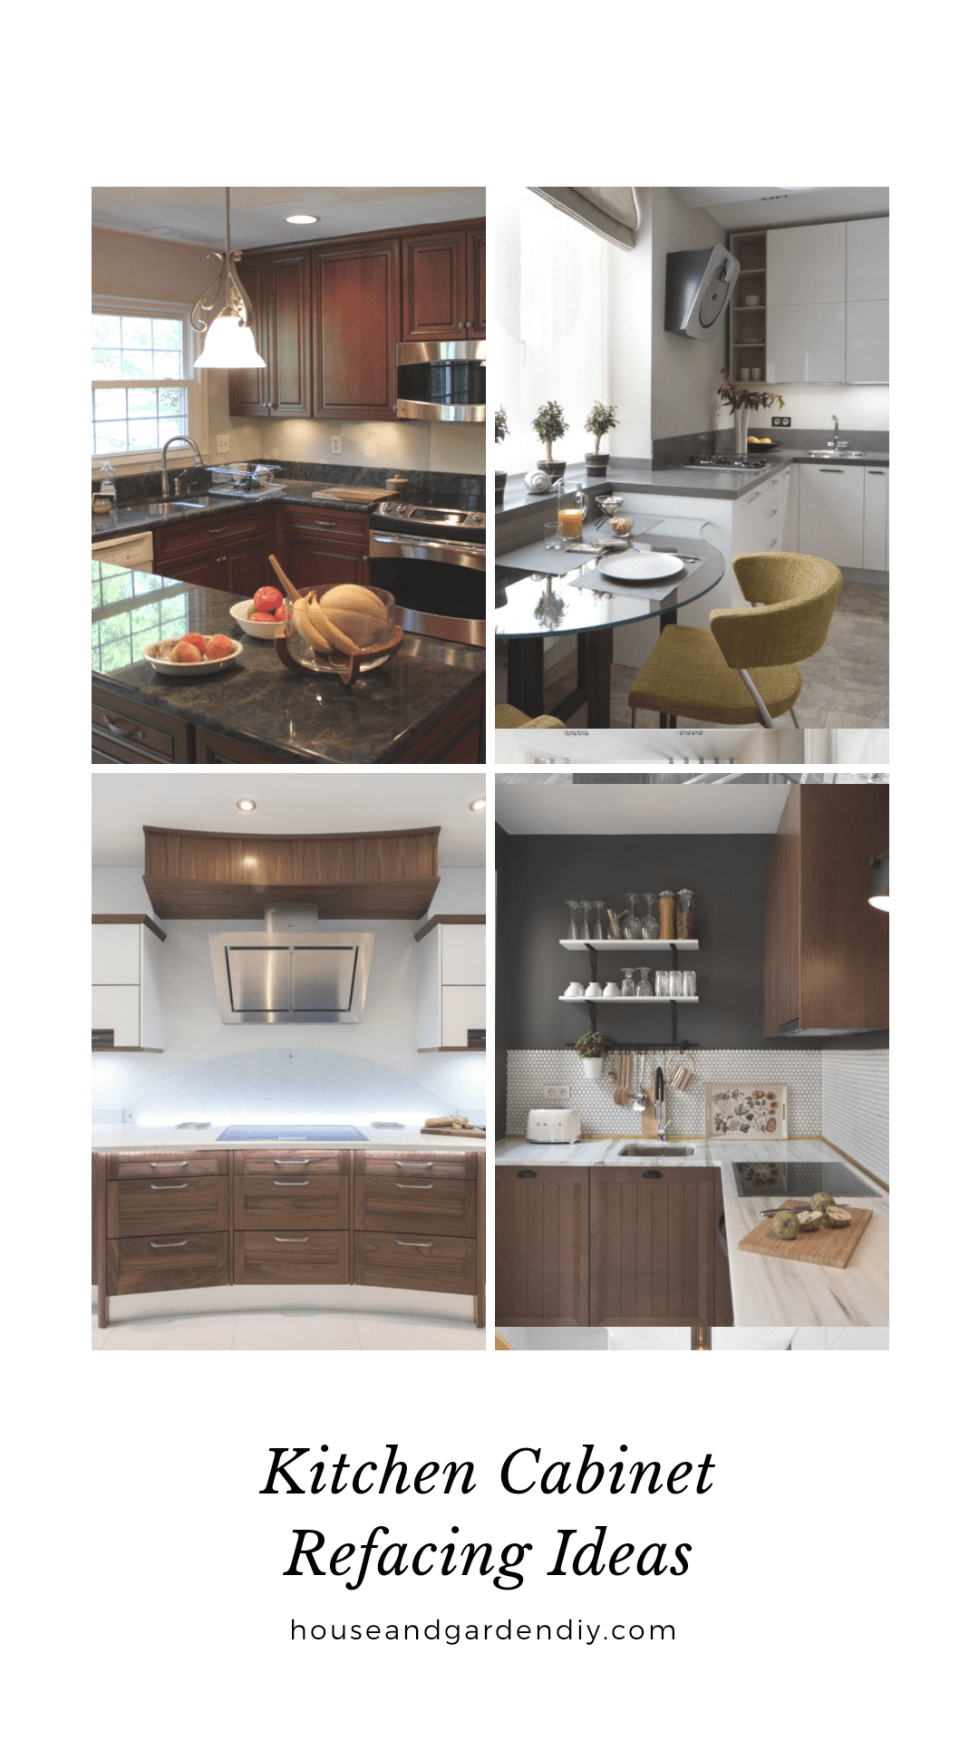 30 Before And After Kitchen Cabinet Refacing Ideas Before And After Diy Cabinet Refacing Kitchen Ideas On A Budget Modern Laminate Refacing Kitchen Cabinets Refacing Kitchen Cabinets Cost Cabinet Refacing